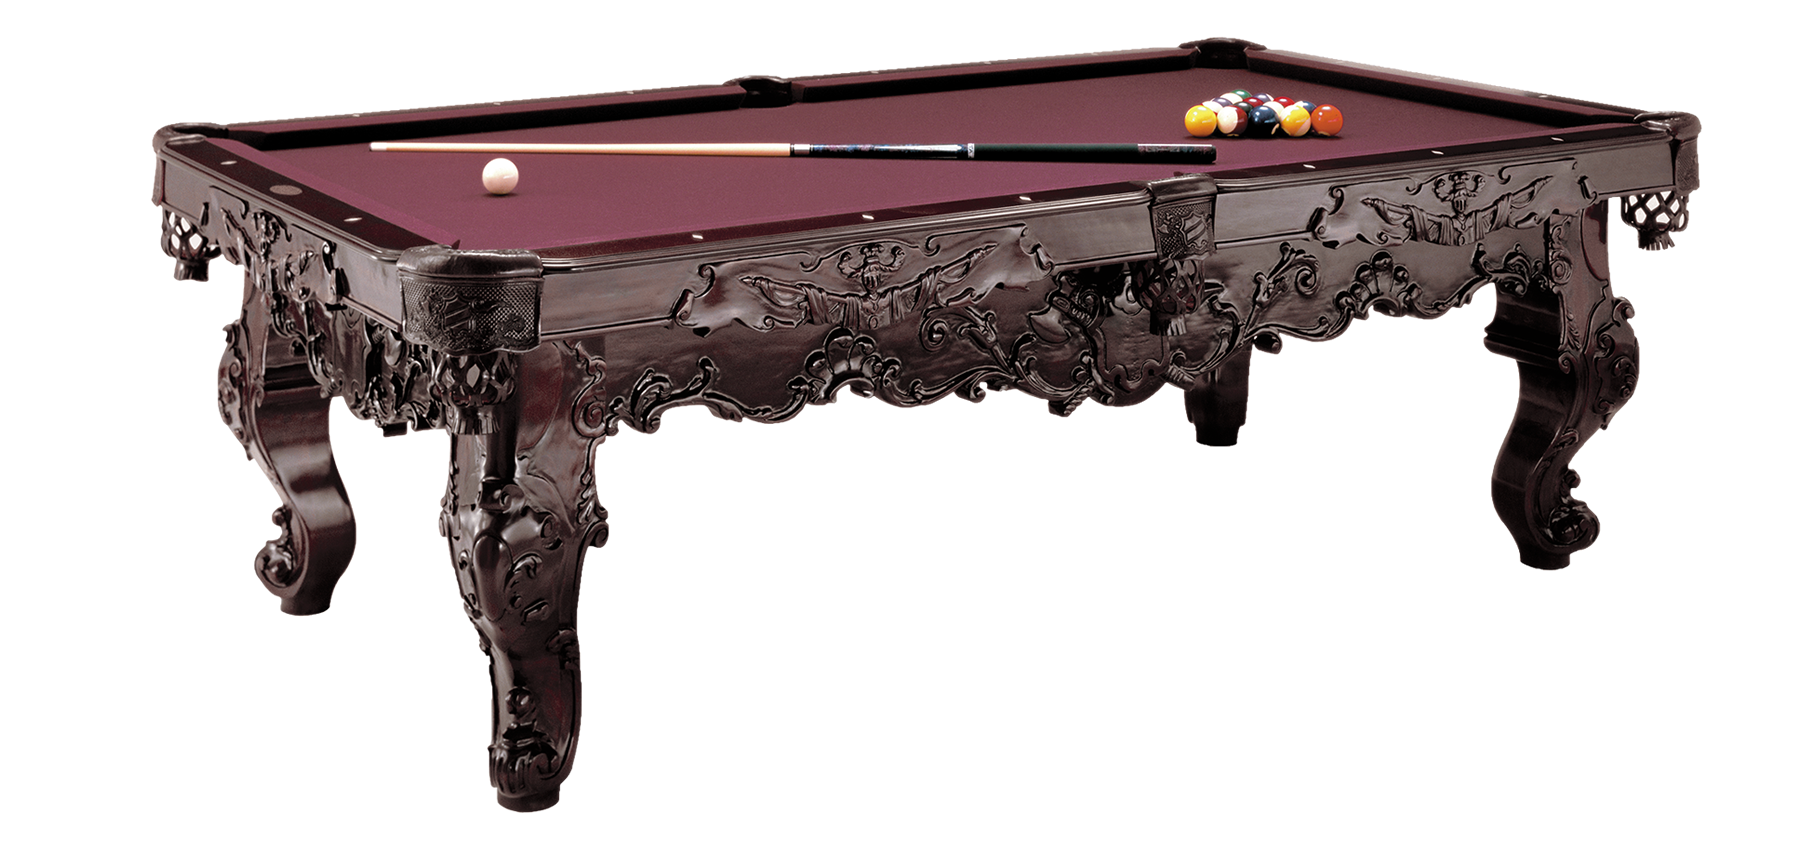 Olhausen Excalibur Pool Table